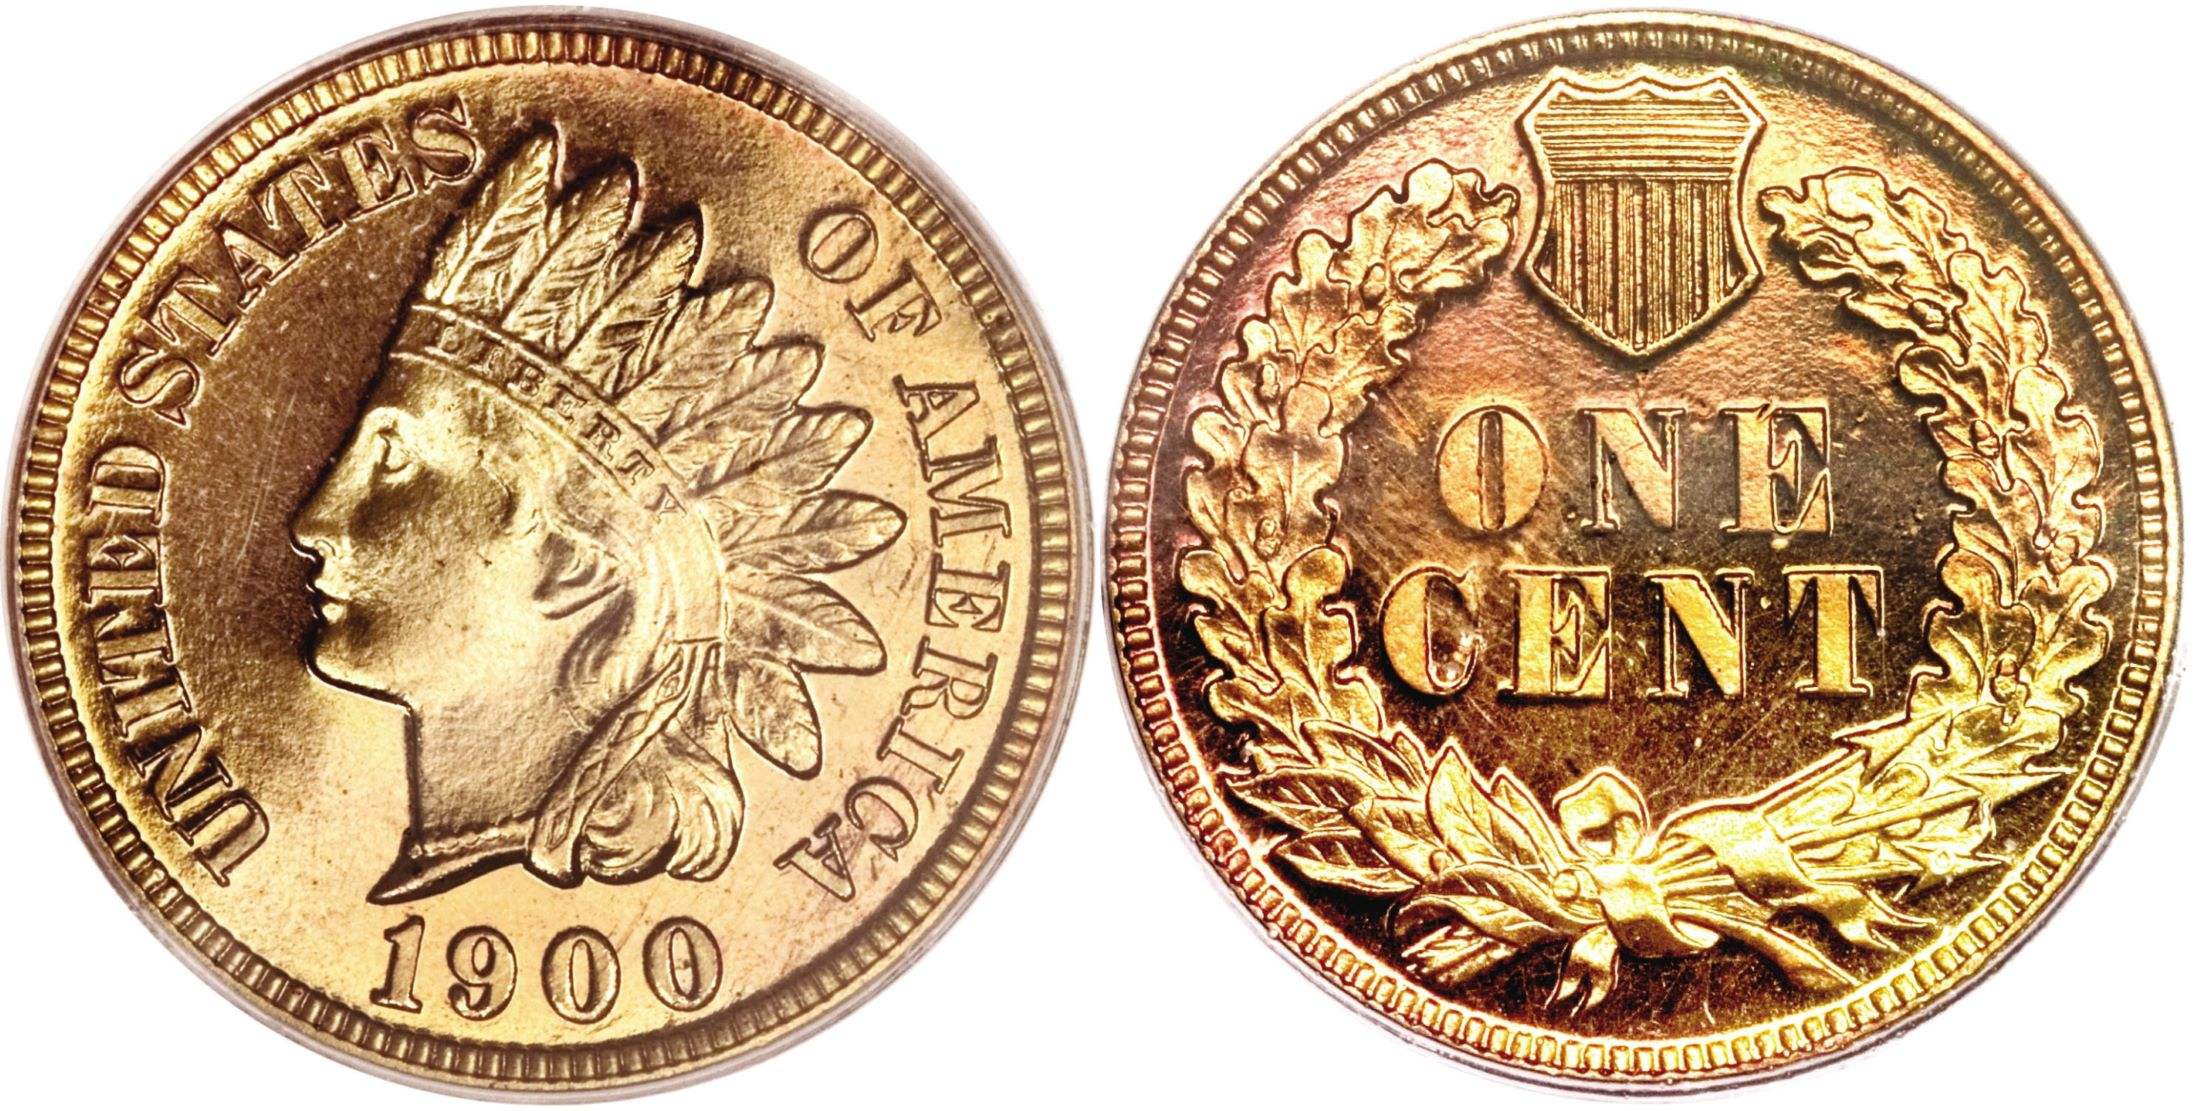 "PCGS PR67CAM<BR>Image courtesy of <a href=""http://www.ha.com"" target=""_blank"">Heritage Numismatic Auctions</a>"